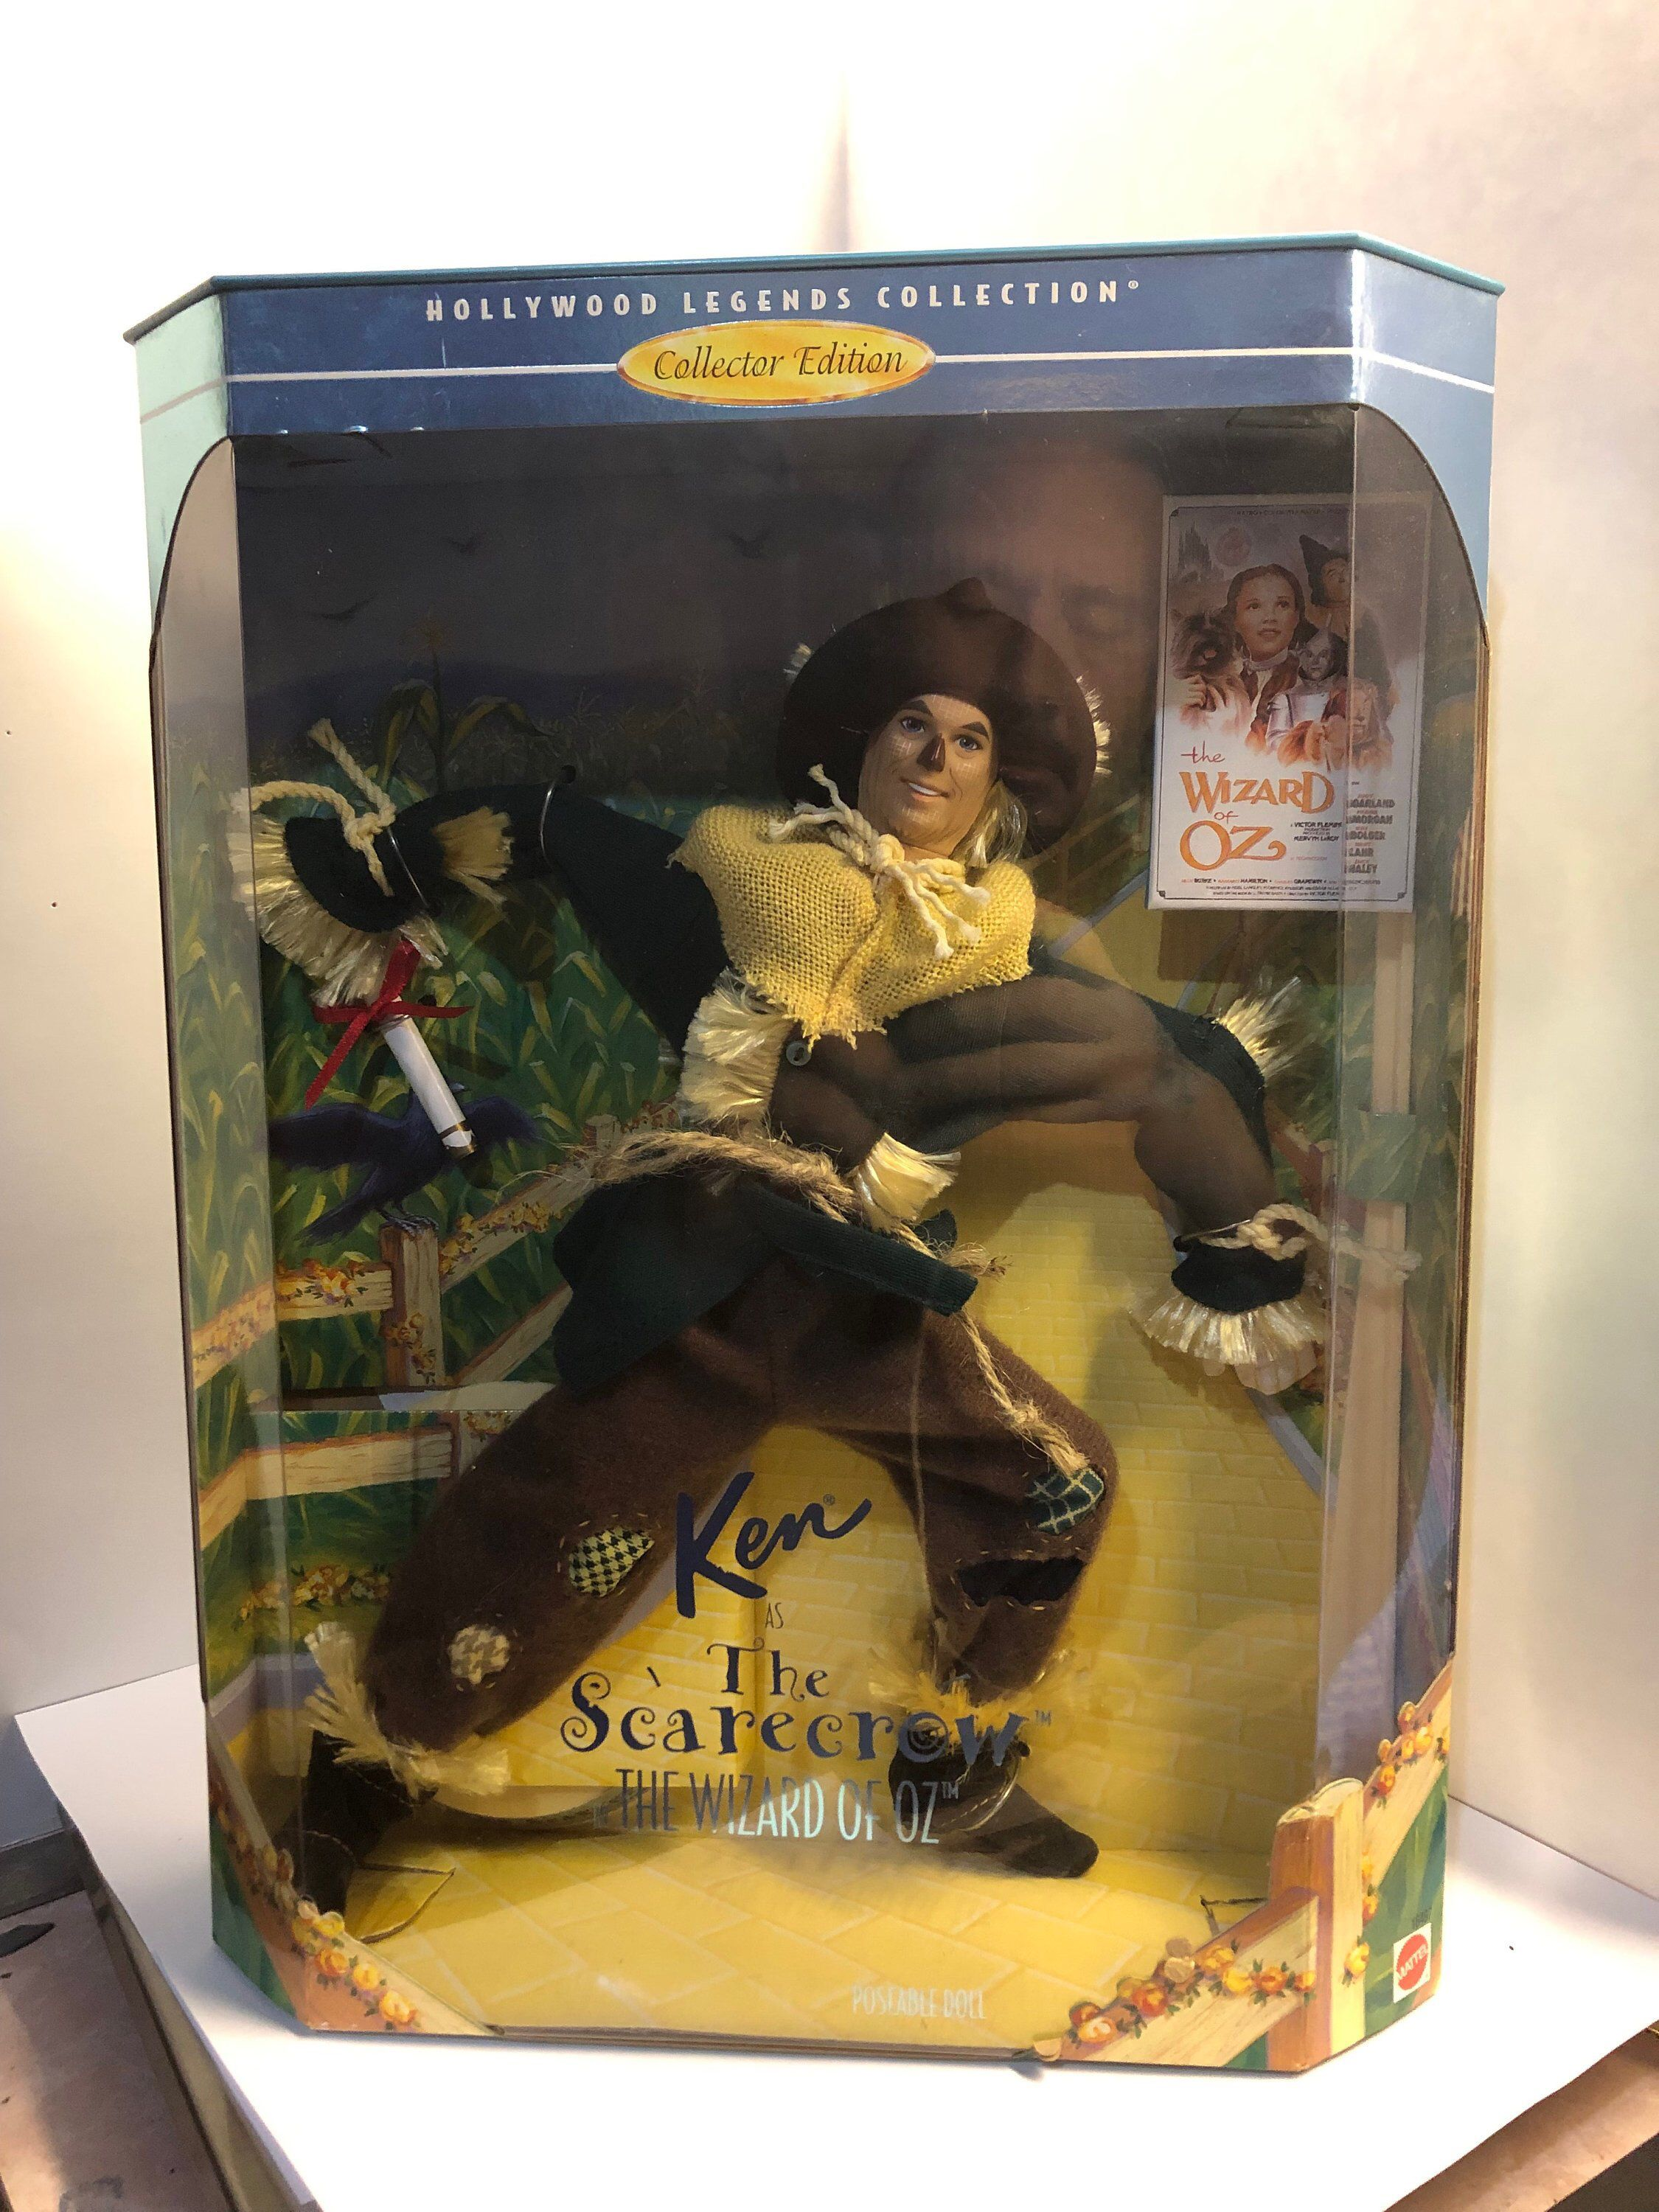 Vintage 1996 Hollywood Legends Collection Ken as The Scarecrow in The Wizard of Oz by Mattel Never Opened #hollywoodlegends